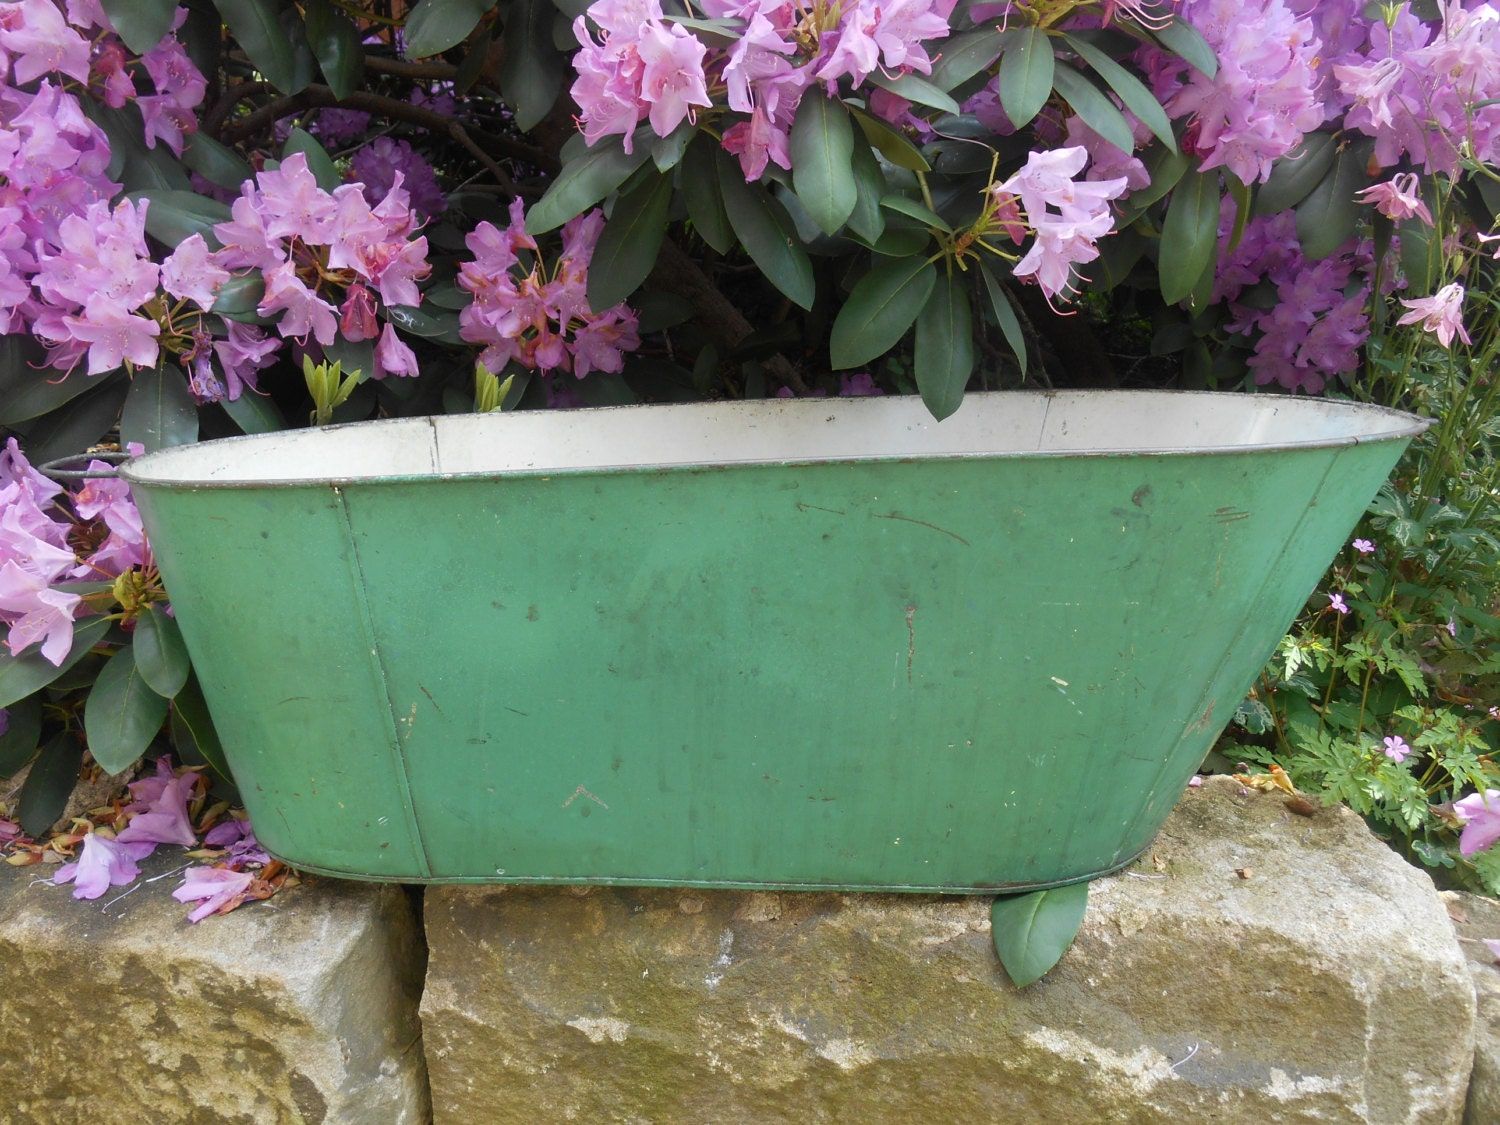 Antique Tin Baby Bathtub Bath Tub Metal Green By Swansdowne